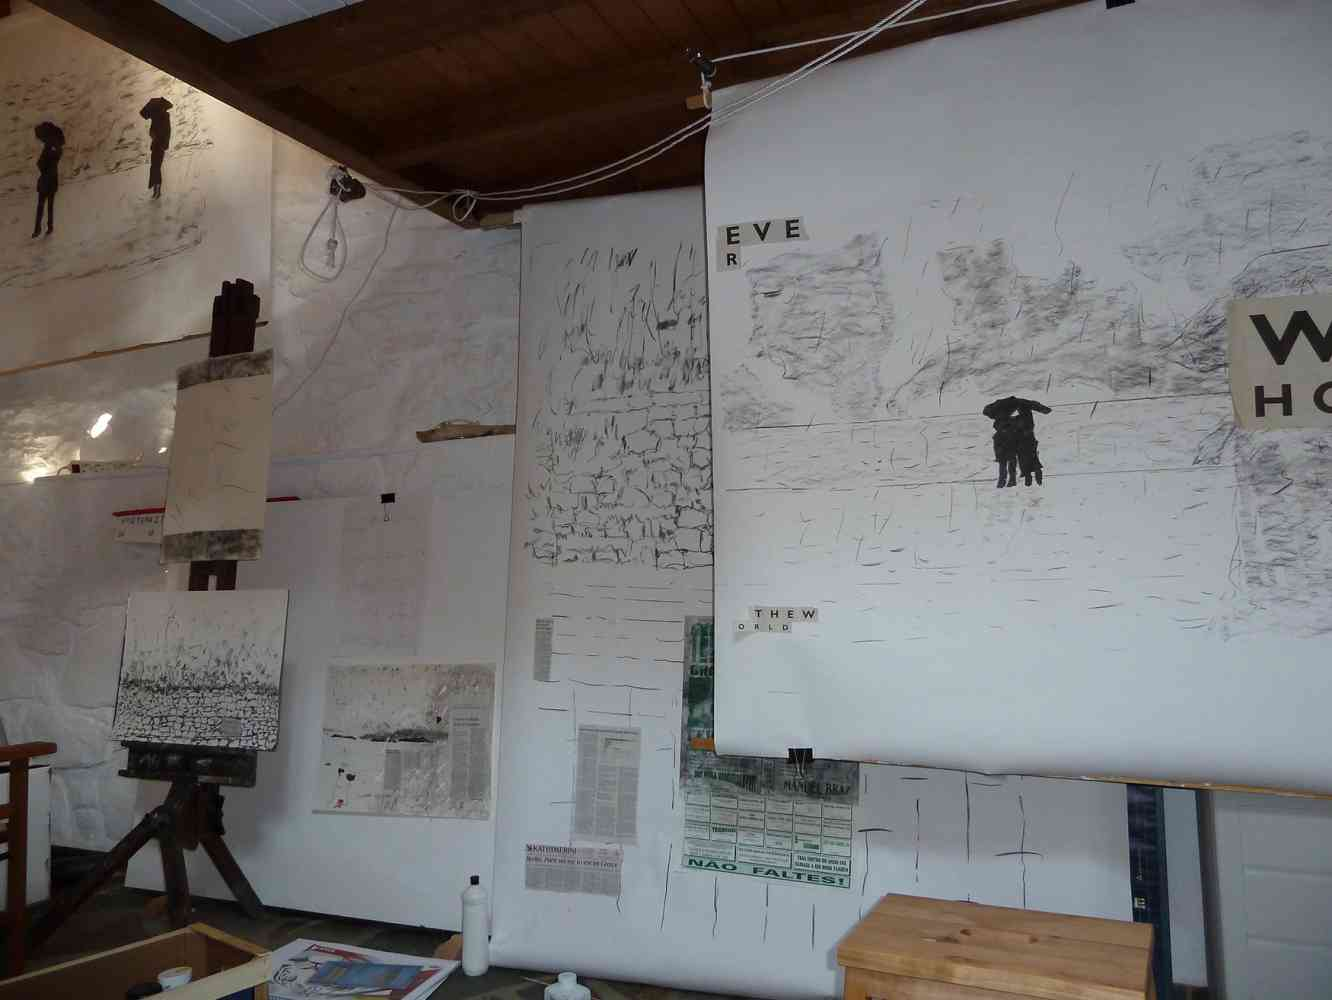 Studio as basis of all projects and ideas:   (Action develops Thought) - Shot of my drawing studio in Greece... Exploring visual ideas for a feature film 'The Immortal Mortal'